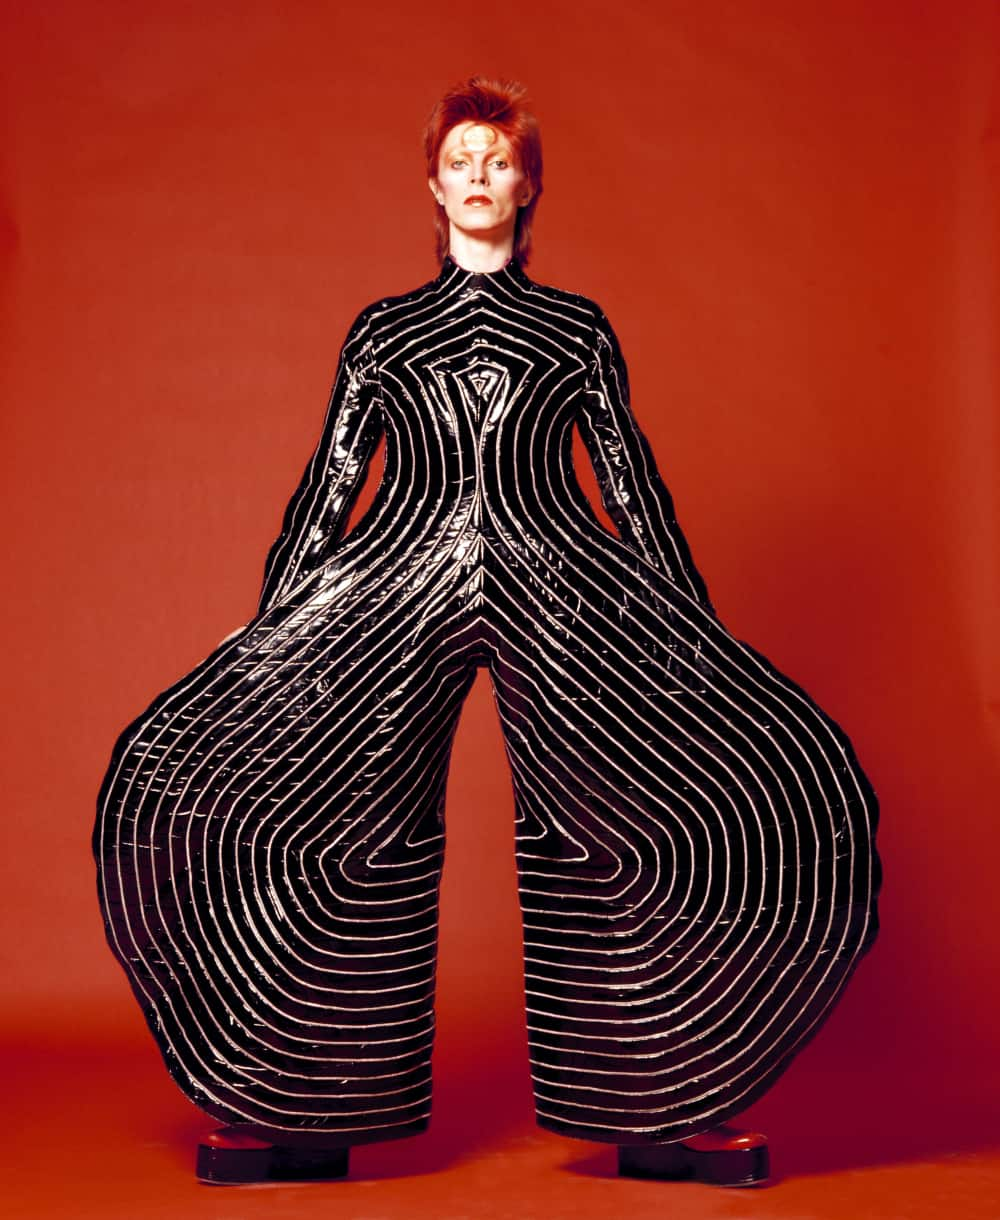 style-icon-david-bowie-25